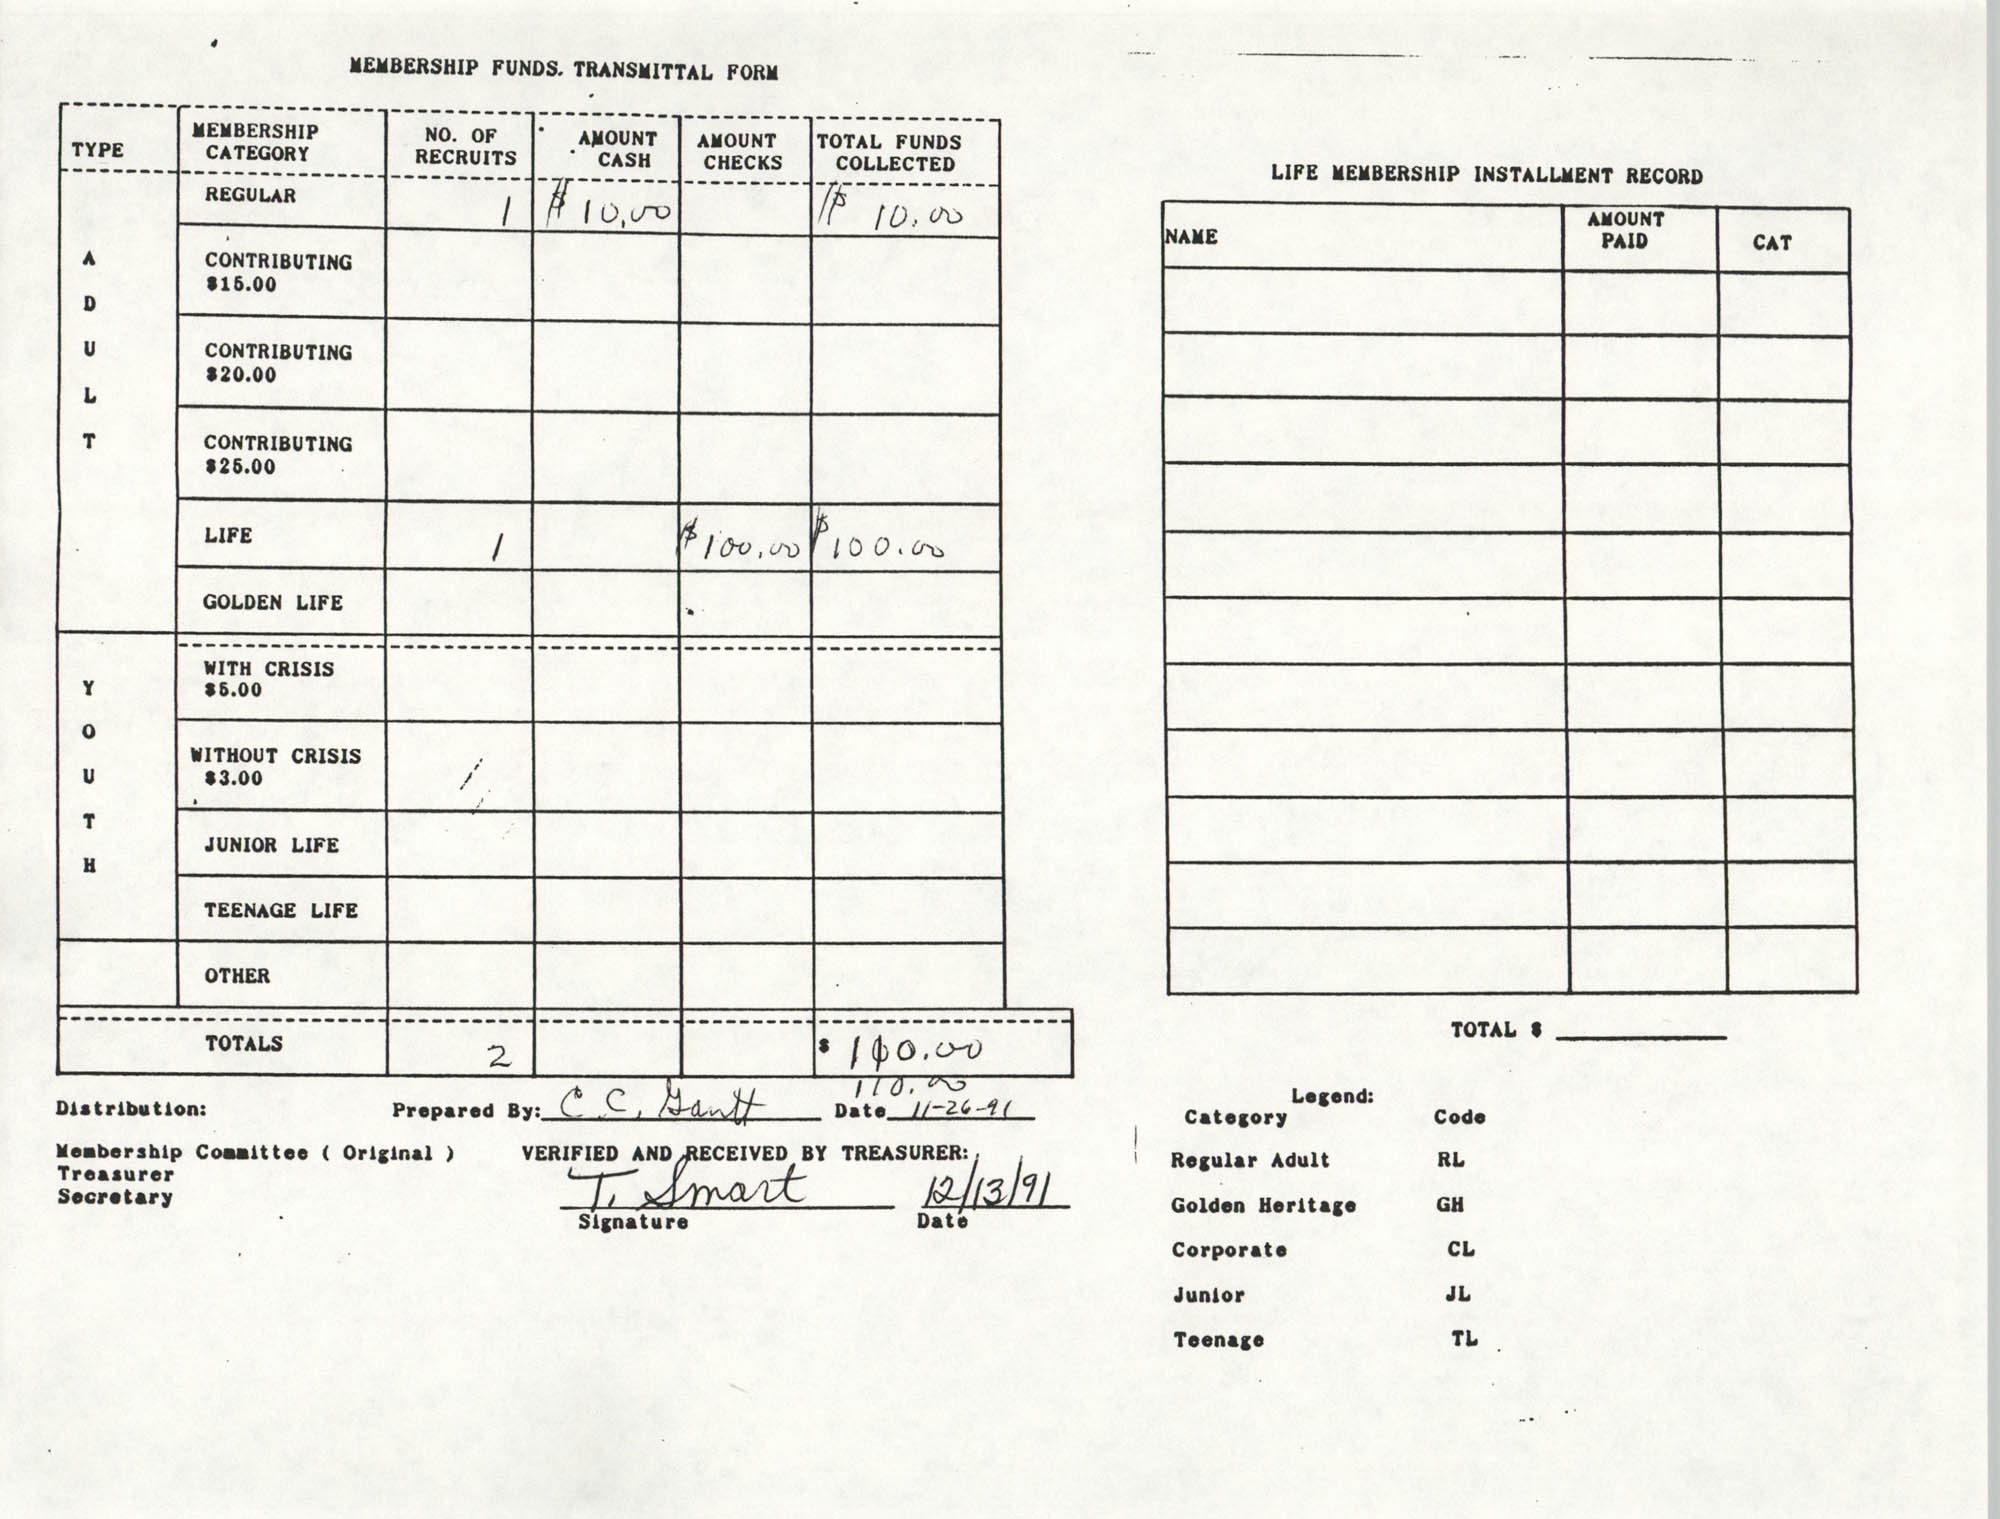 Charleston Branch of the NAACP Funds Transmittal Forms, November 1991, Page 5